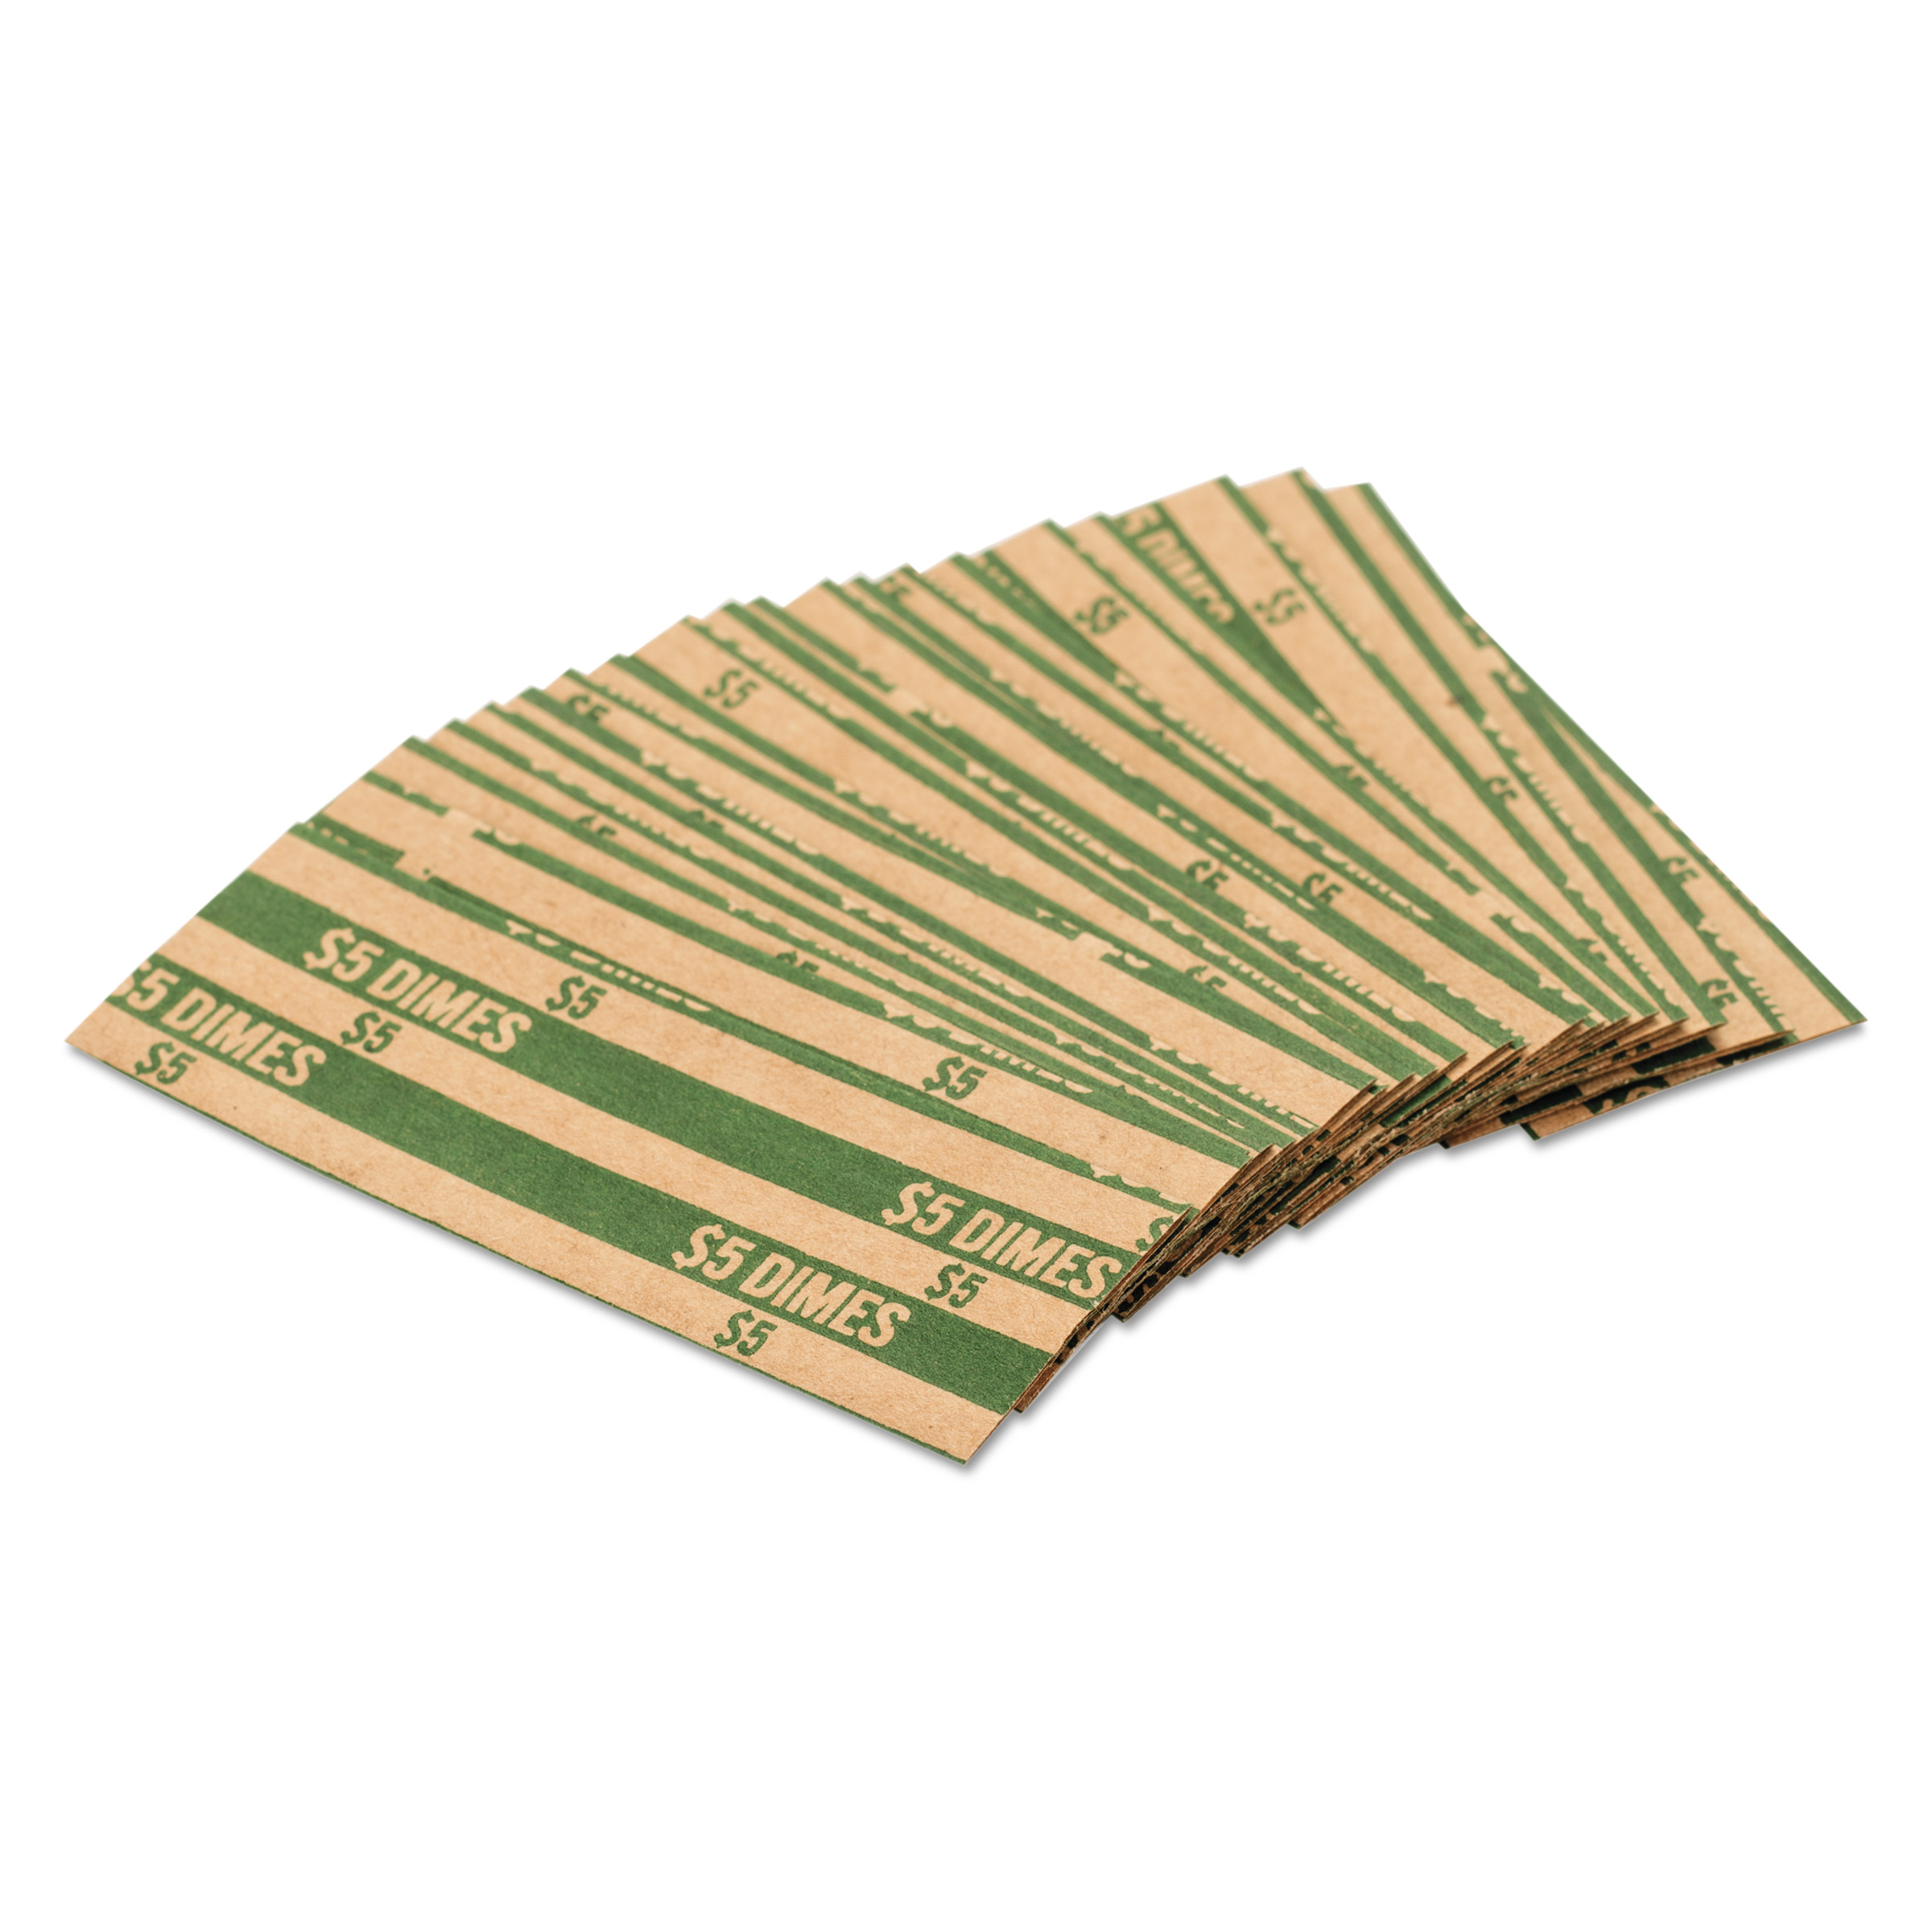 Coin-tainer Flat Coin Wrappers - Heavy Duty - Paper - Green (30010_40_1)